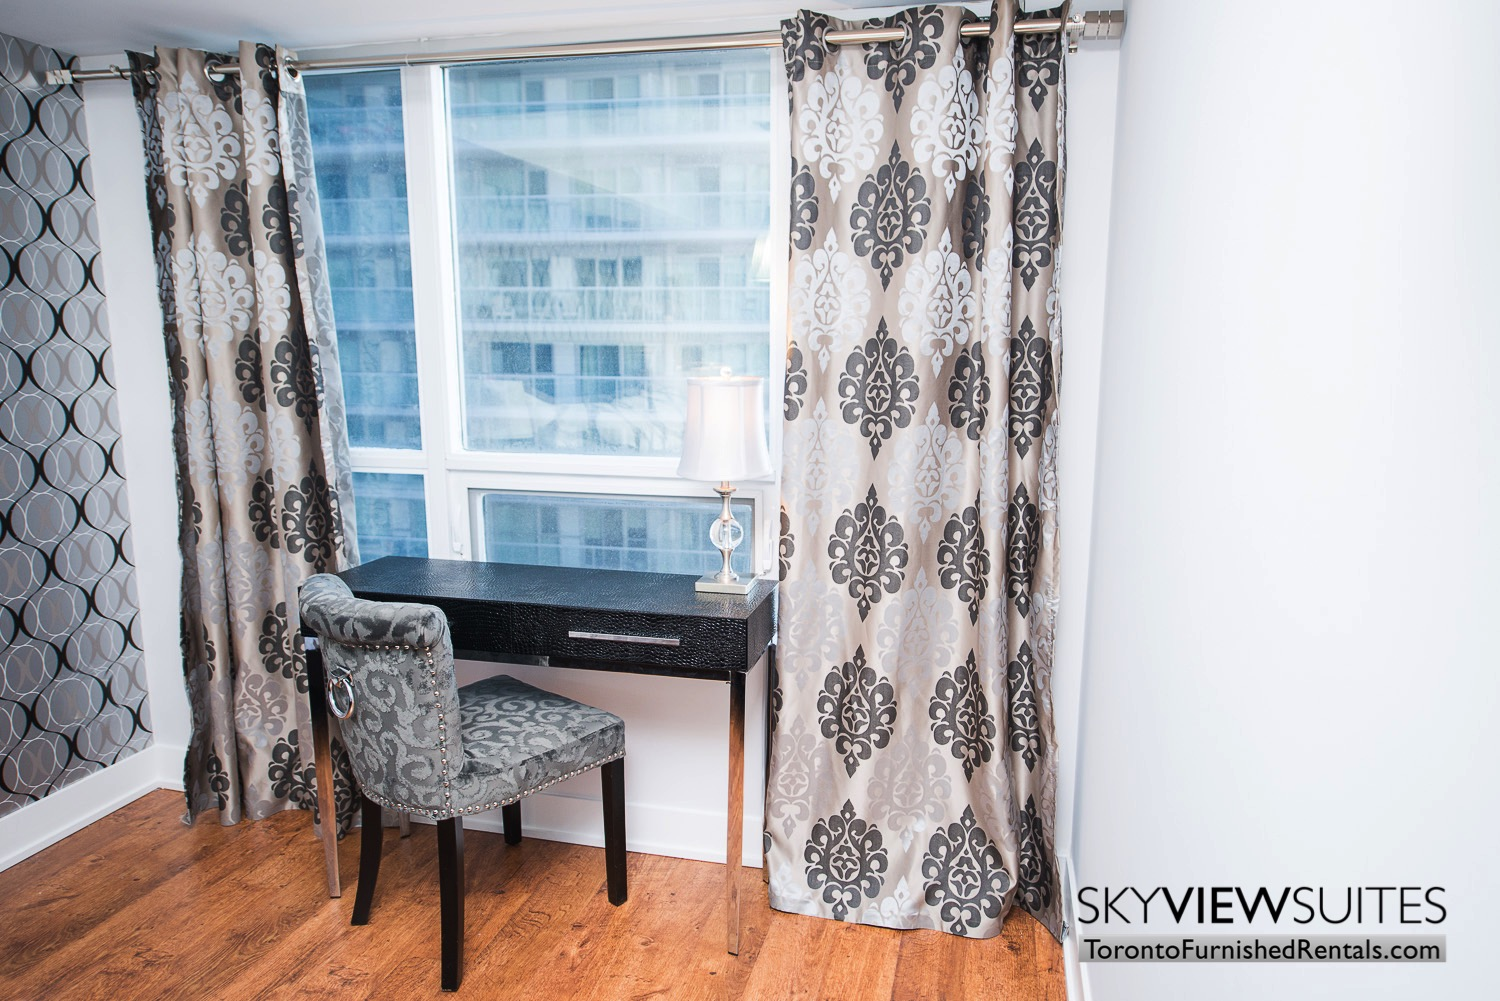 furnished-apartments-bedroom-entertainment-district